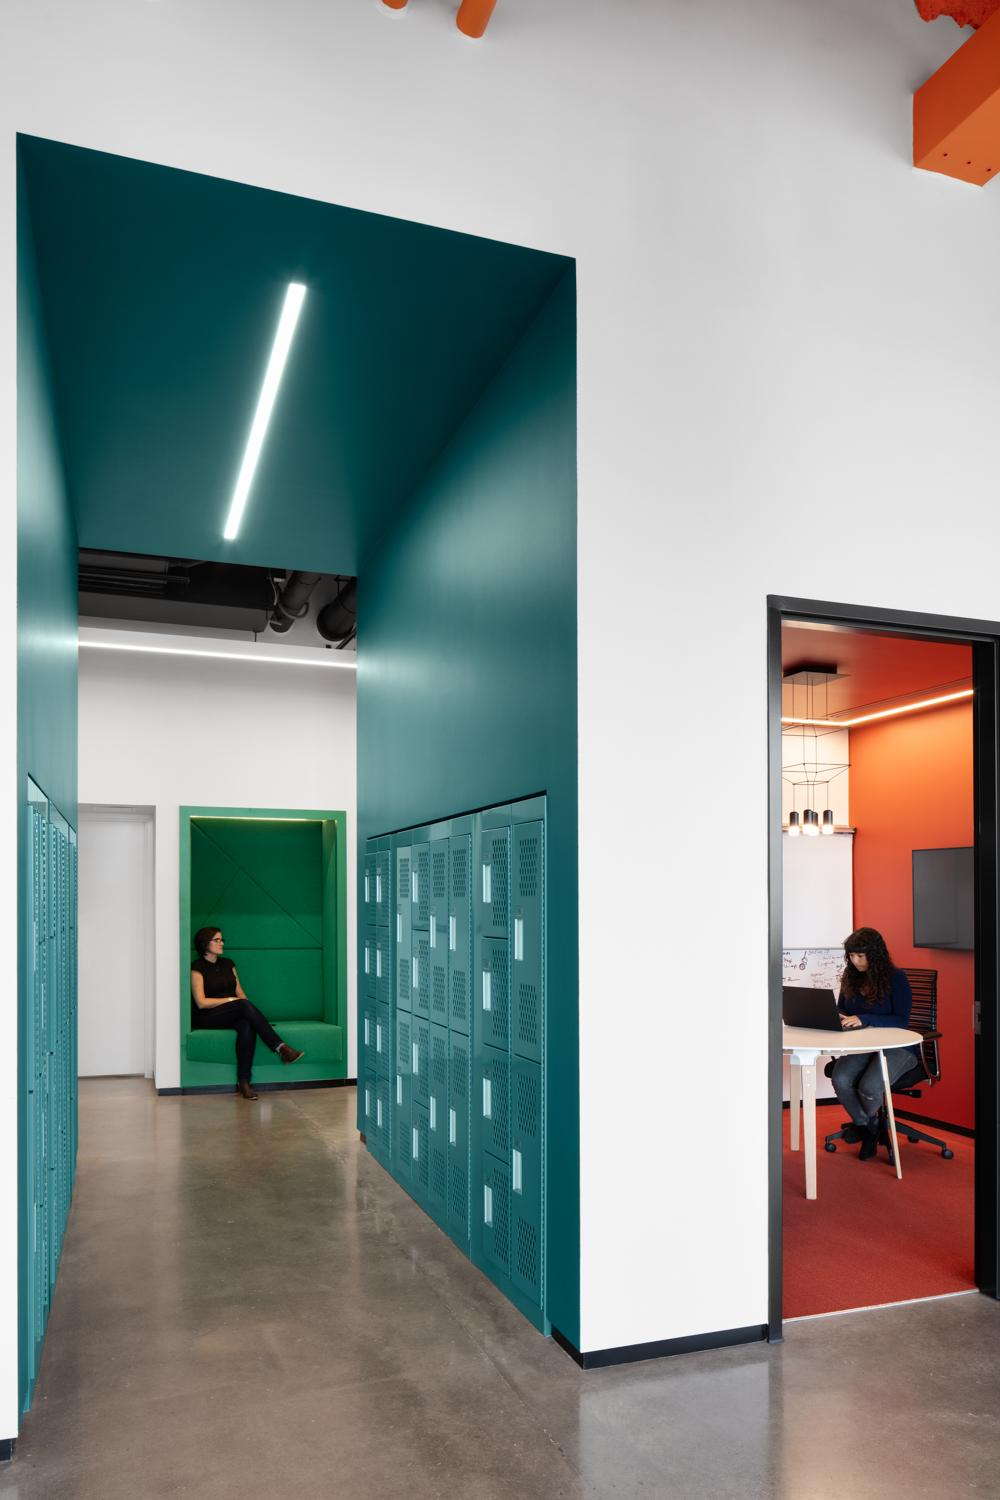 a woman sits in a recessed green seating nook in the wall, visible through a bright teal hallway with lockers, with another woman working on a laptop in a red meeting room visible to the right